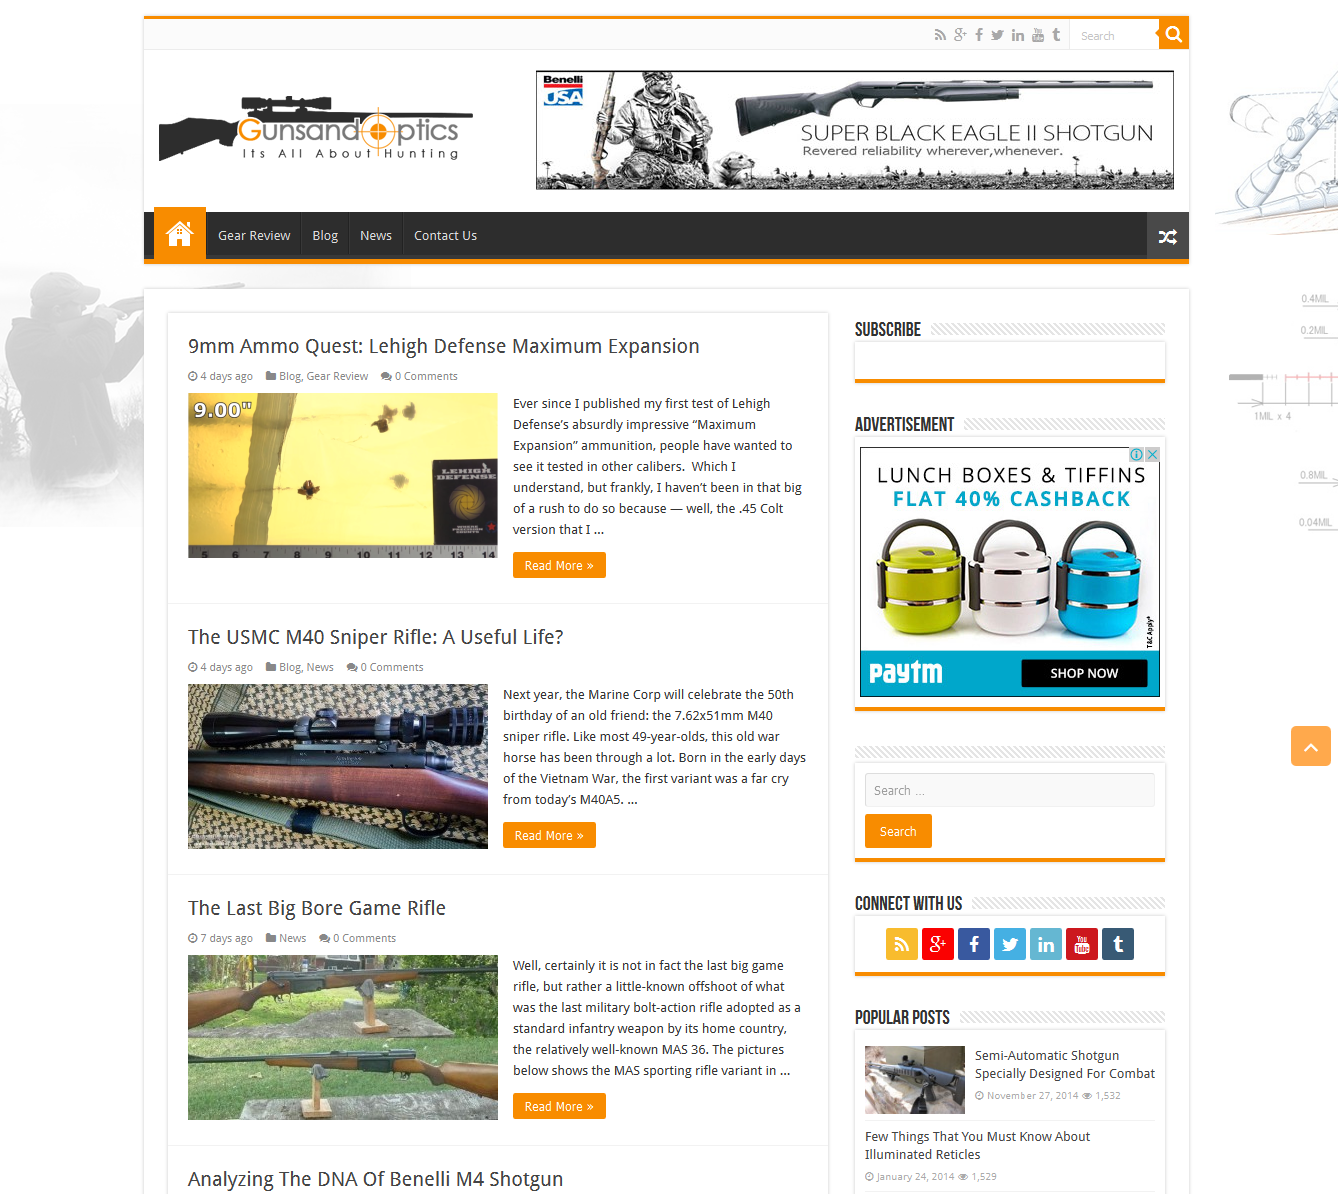 Online Blog On Sporting Goods